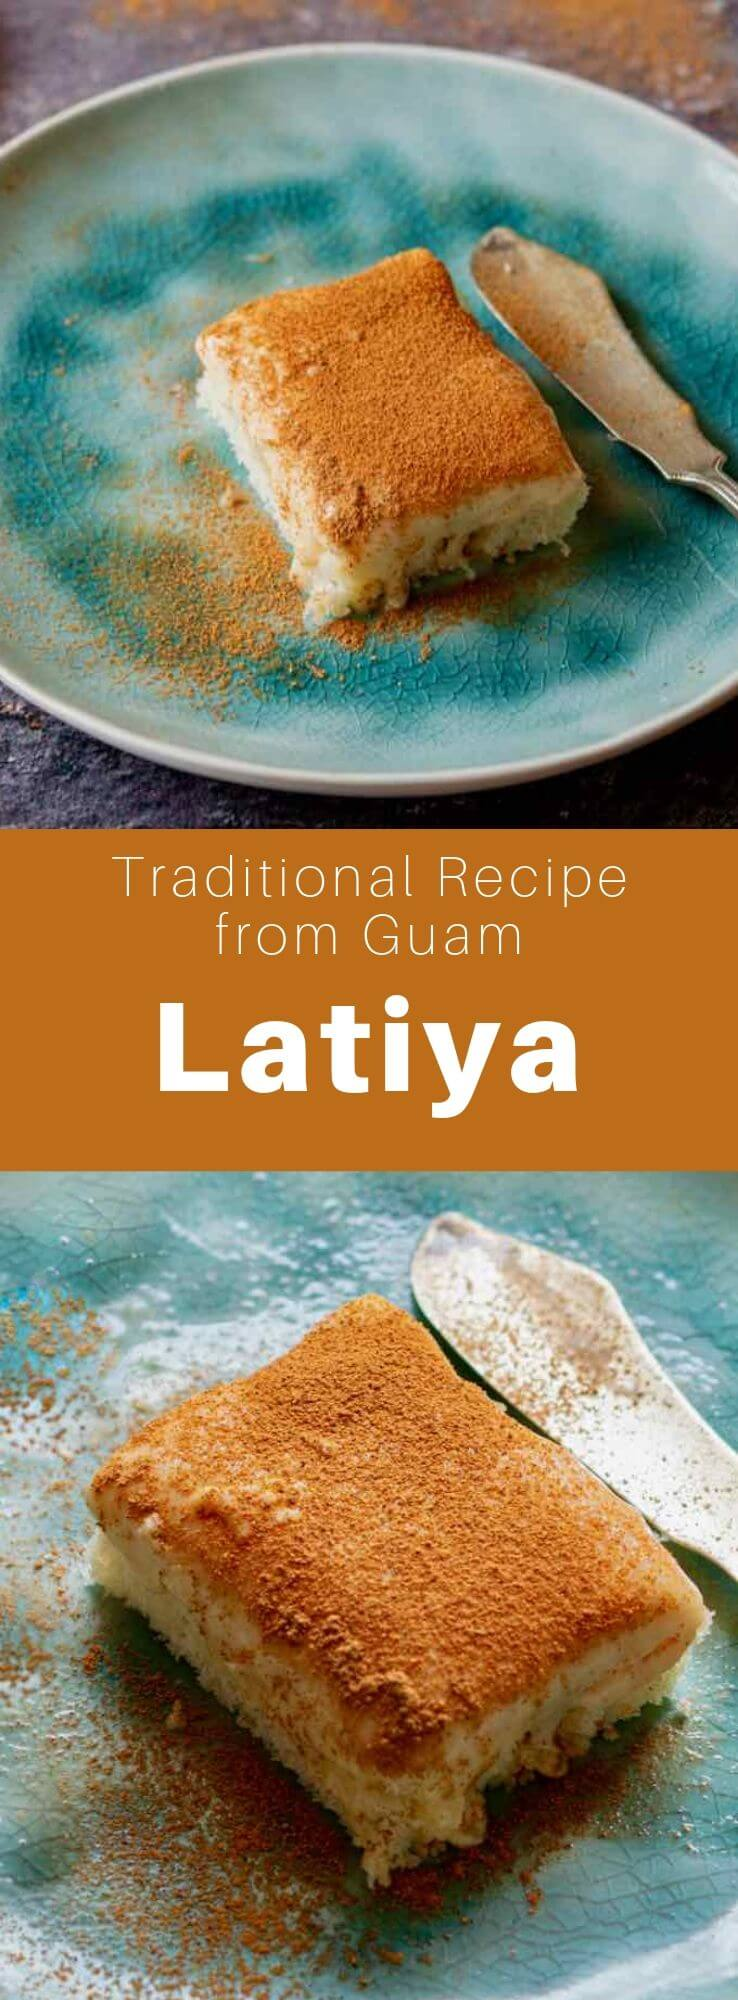 Latiya (or natiya) is a popular dessert from Guam prepared with vanilla pastry cream sprinkled with cinnamon and a sponge cake base. #Guam #GuamFood #GuamRecipe #GuamCuisine #Chamorro #ChamorroCuisine #ChamorroFood #ChamorroRecipe #WorldCuisine #196flavors